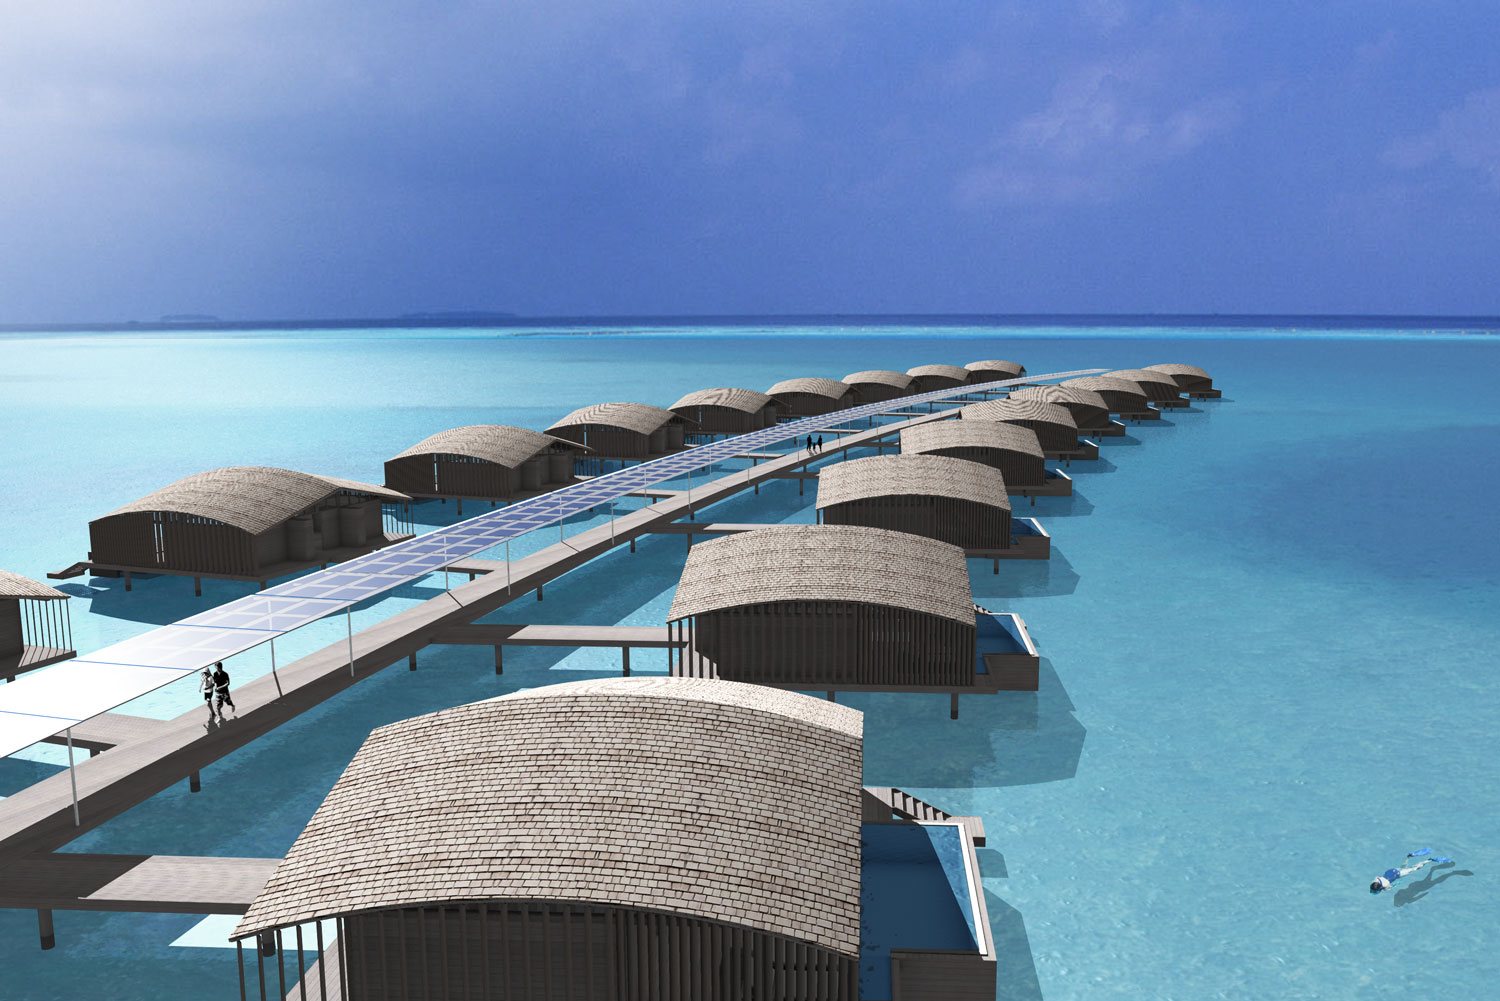 Is this club meds most luxurious resort yet international is this club meds most luxurious resort yet sciox Gallery